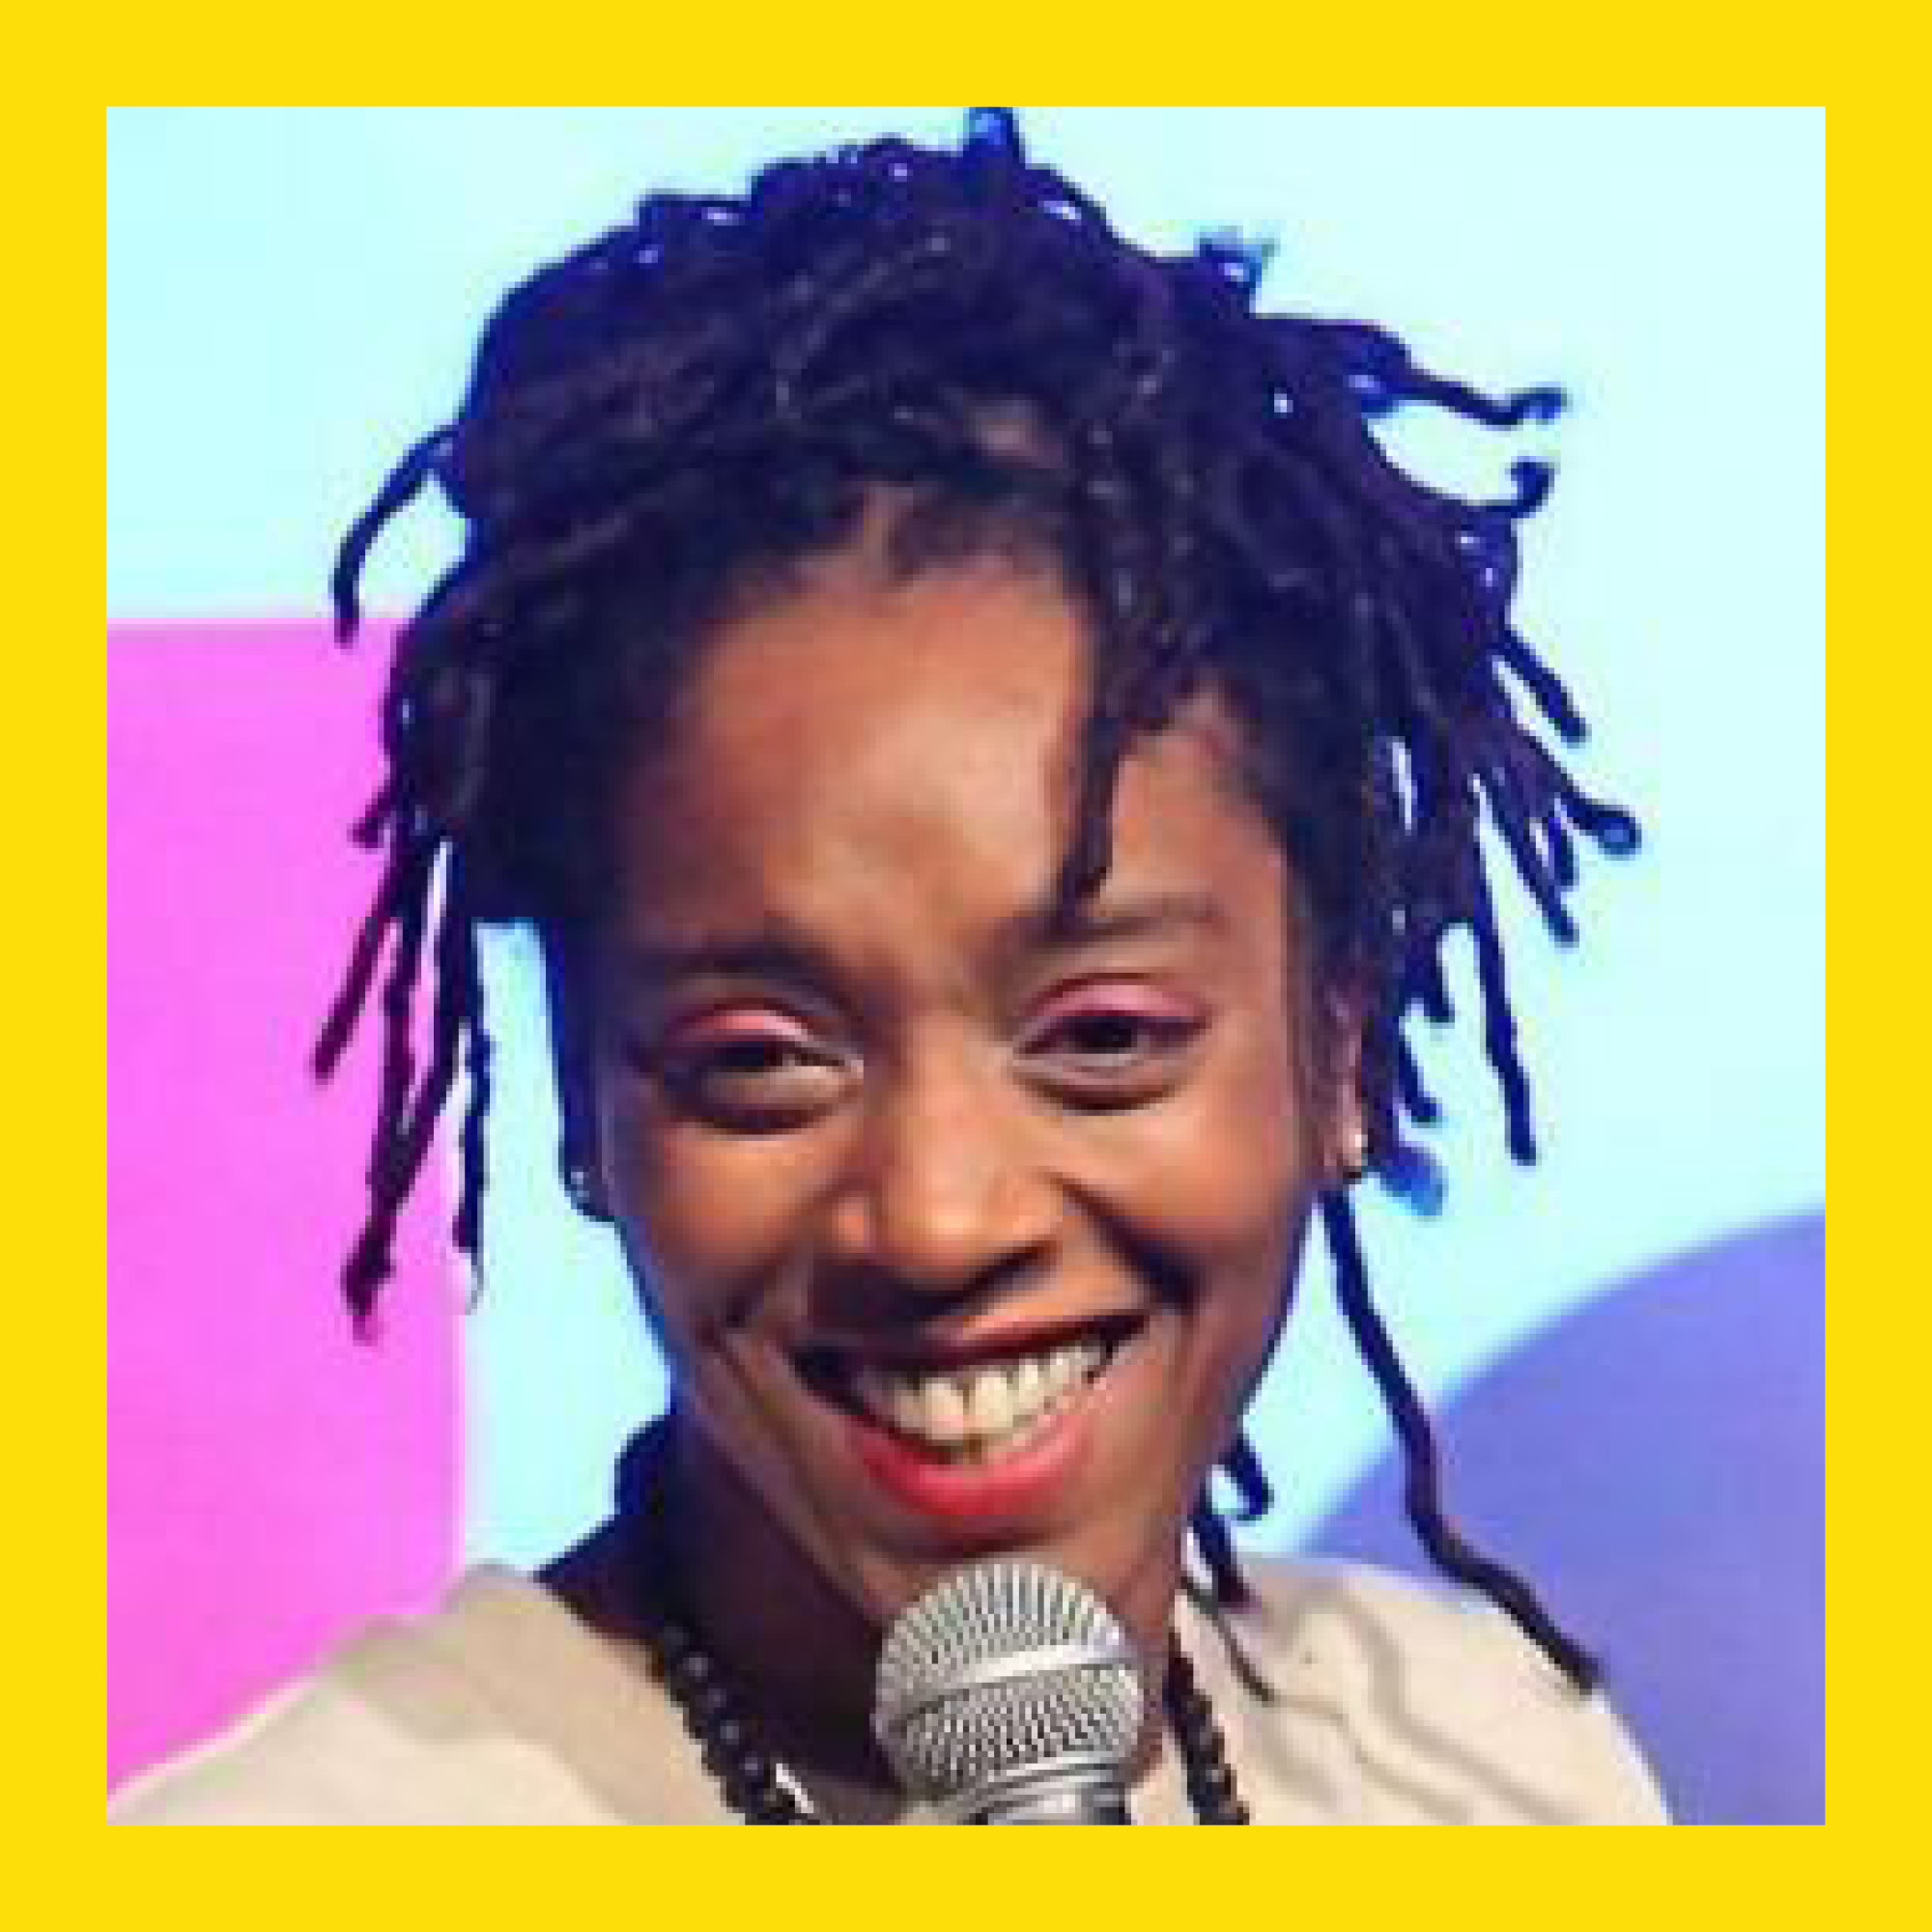 Athena Kugblenu is a 2017 nominee for the 99 Club Female Comedians' Bursary. She writes for BBC Radio 4, regularly records stand up for BBC radio and in 2017 performed at the Johannesburg International Comedy Festival. She has taken two acclaimed hours to the Edinburgh Fringe, KMT (2017) and Follow the Leader (2018). -